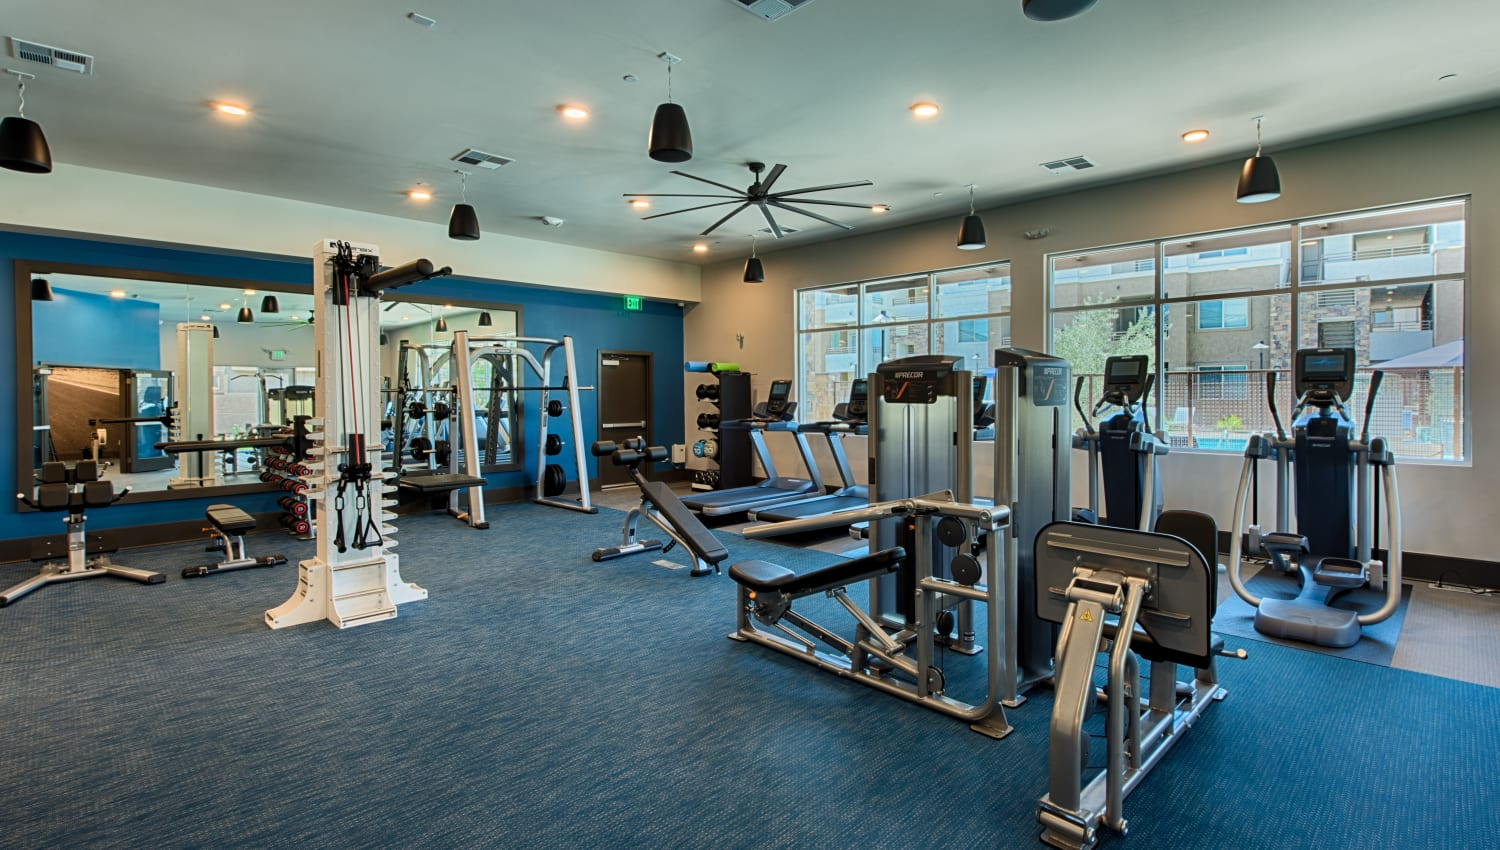 Fully equipped fitness center at Ocio Plaza Del Rio in Peoria, Arizona